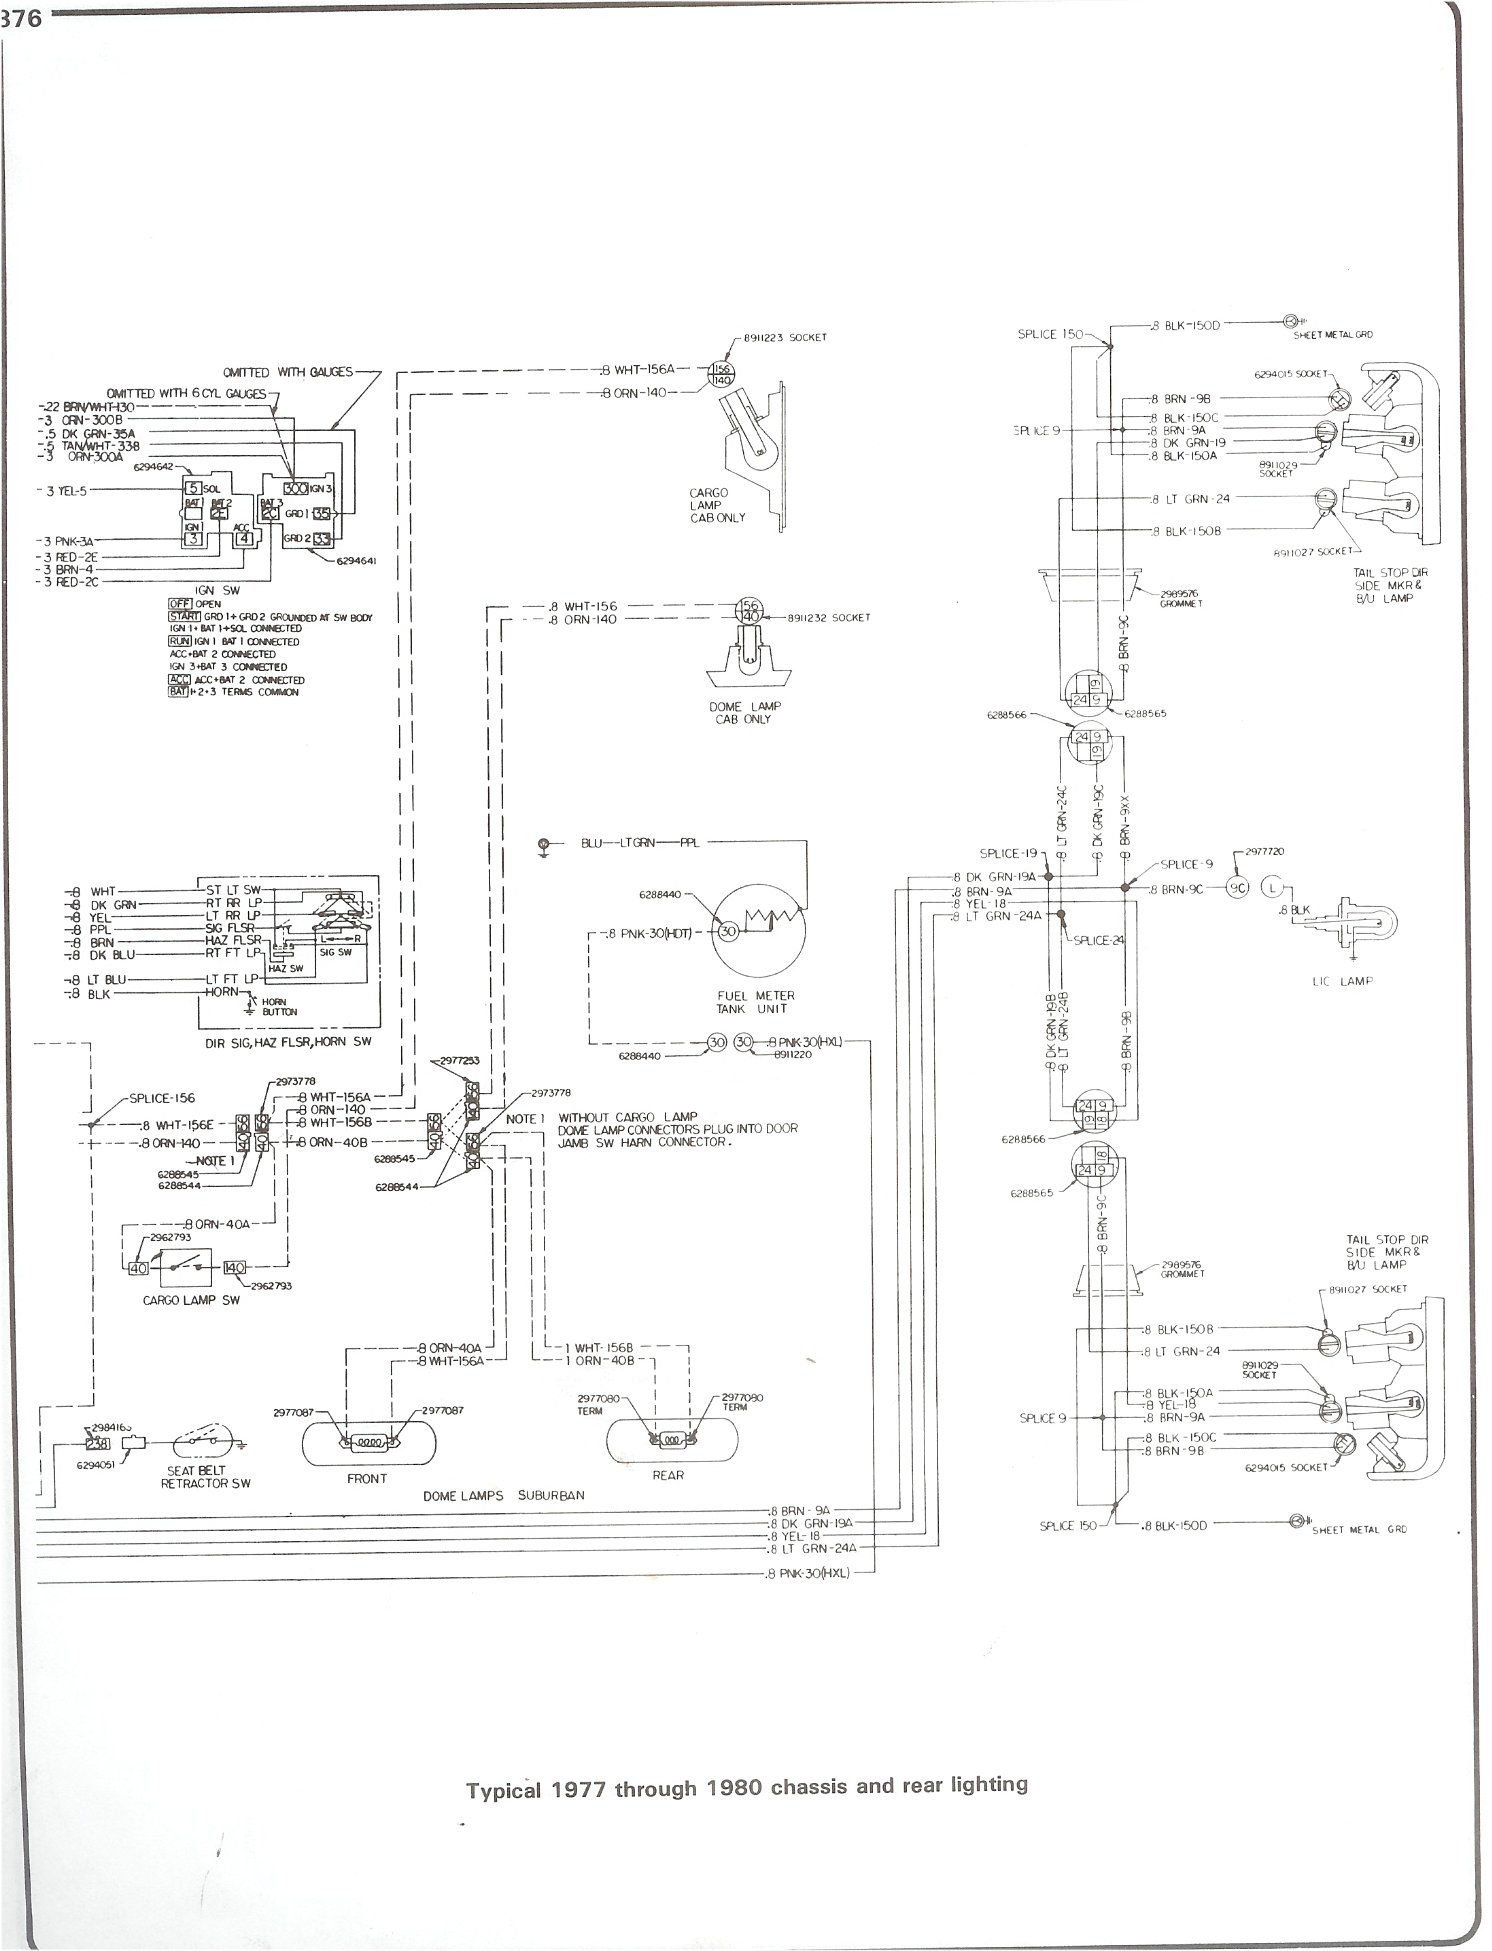 87 Chevy Wiring Diagram Opinions About Corvette Dashboard Free Download Van Engine Image For User Manual